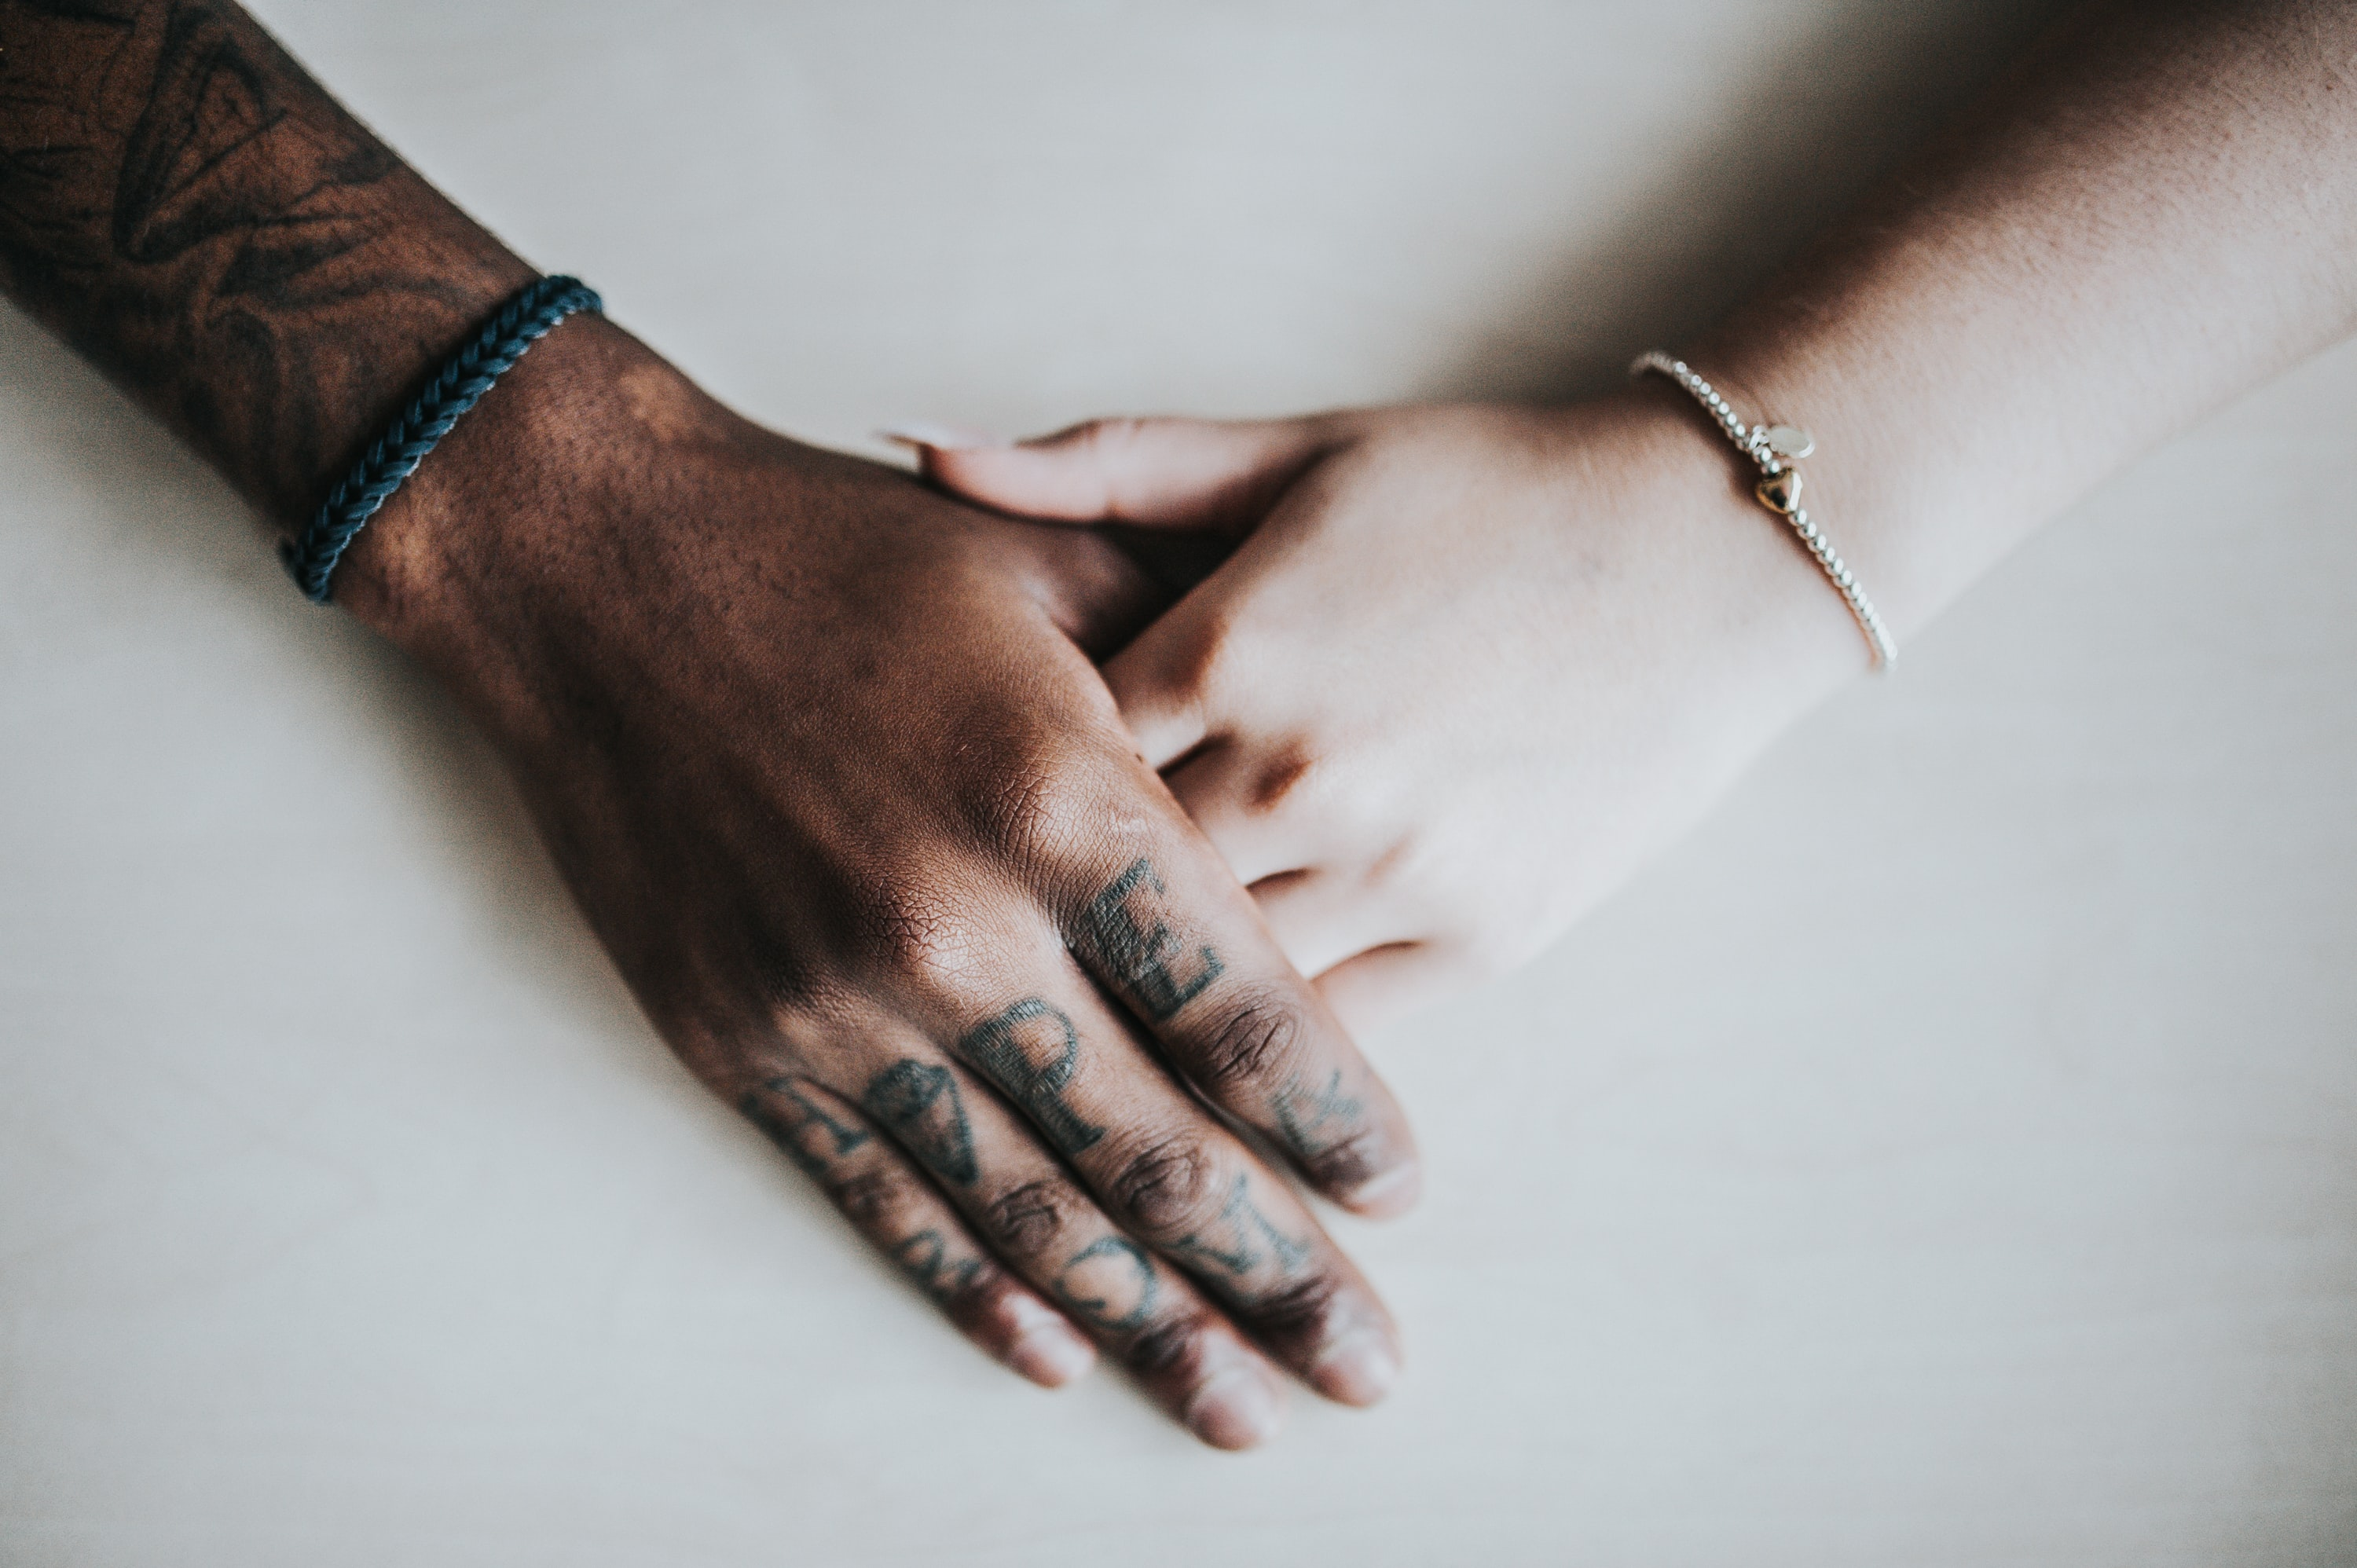 two people wearing bracelets holding hands